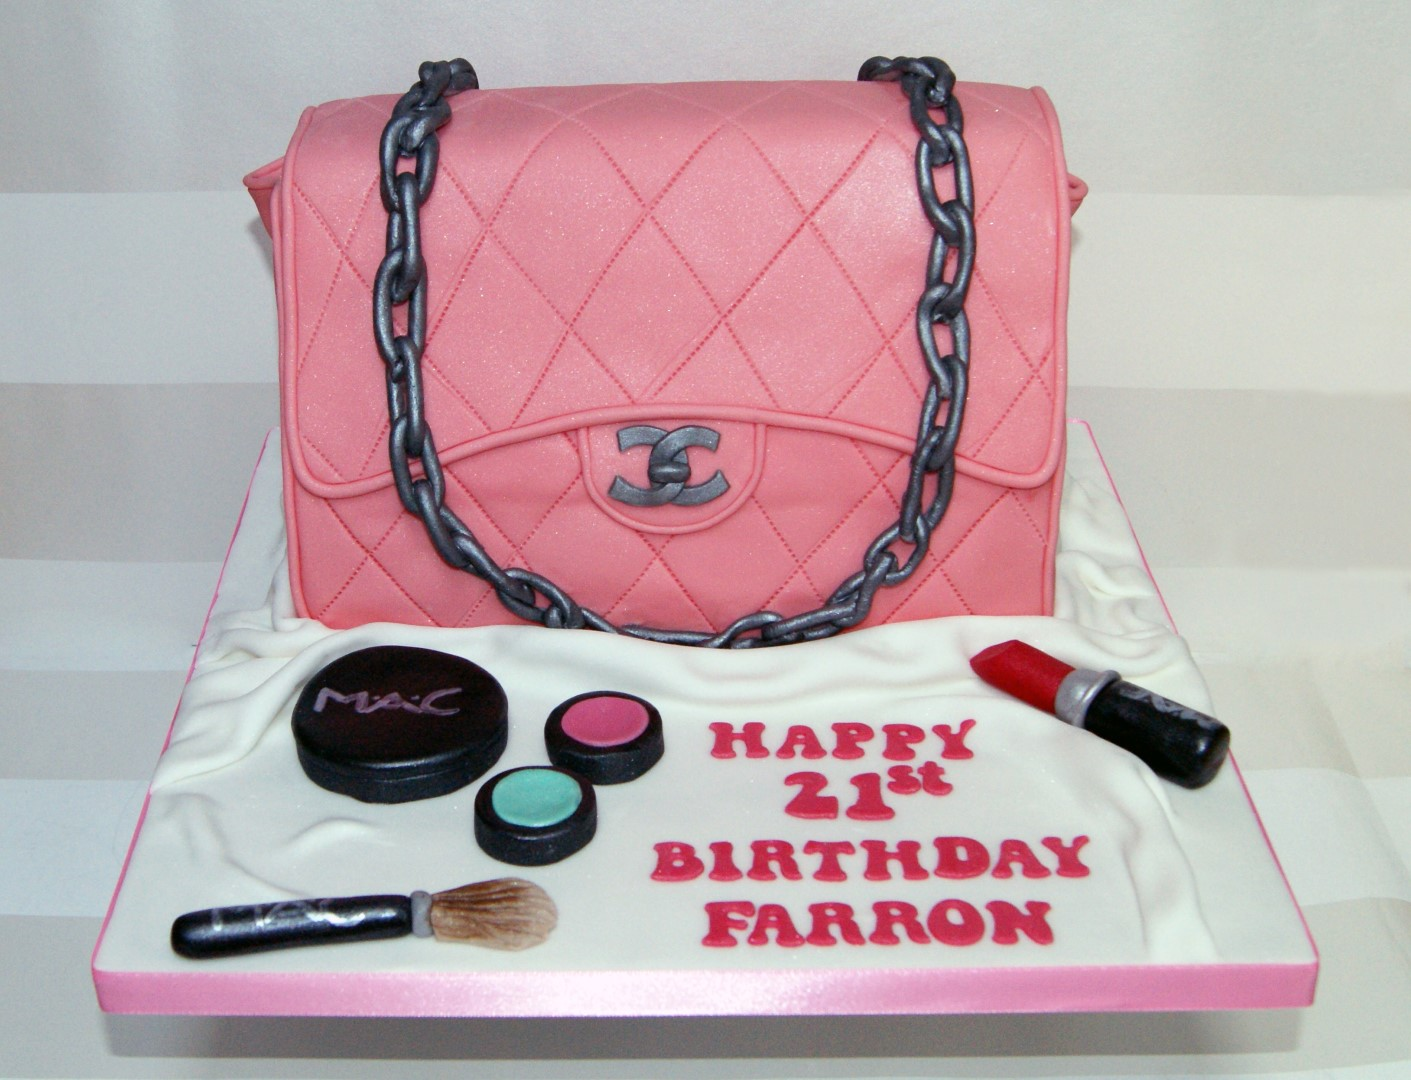 Pink Chanel Handbag Cake View Gallery Read Post